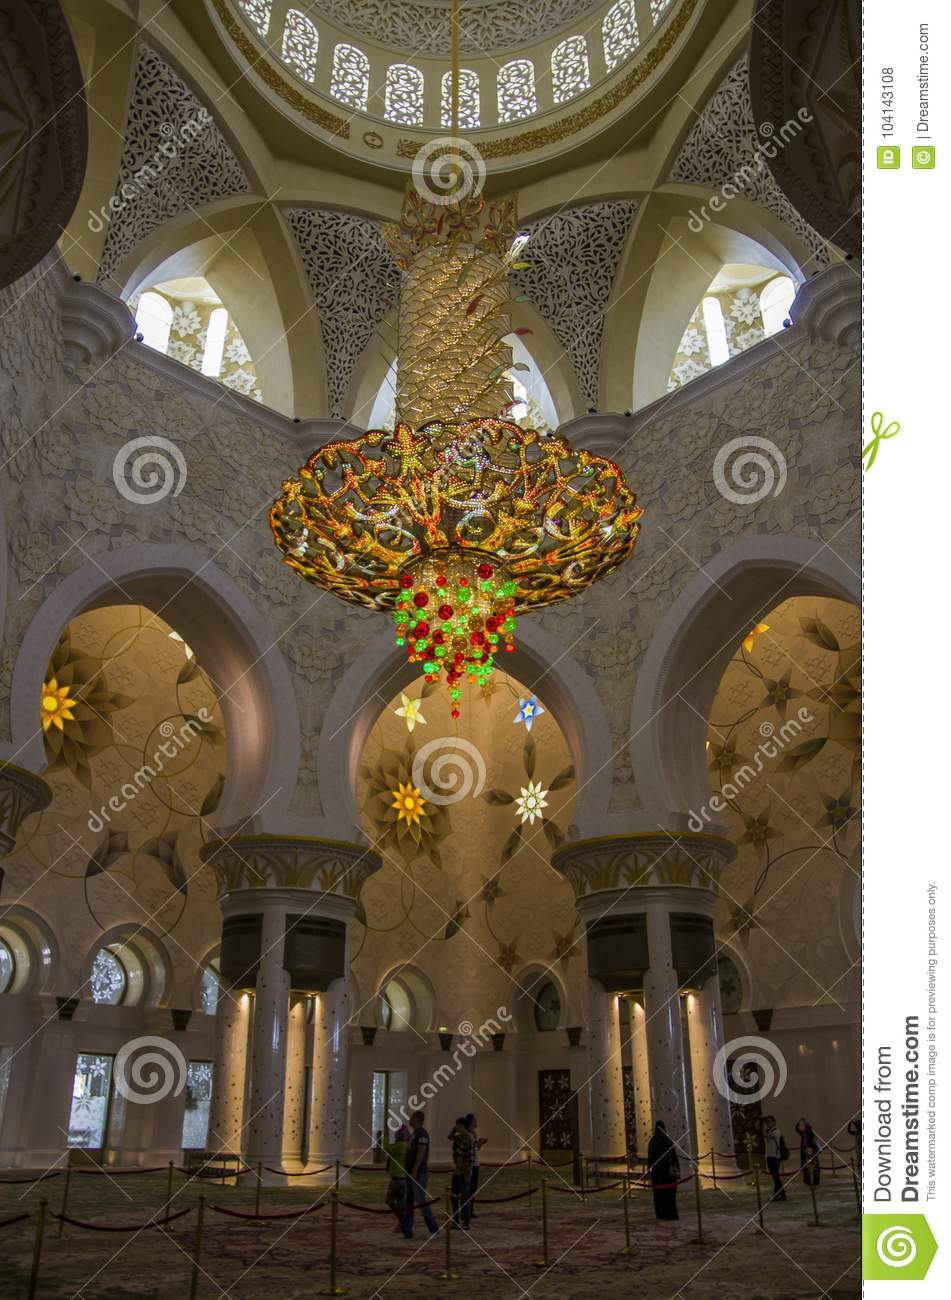 Exterior: Interior Of Sheikh Zayed Grand Mosque In Abu Dhabi